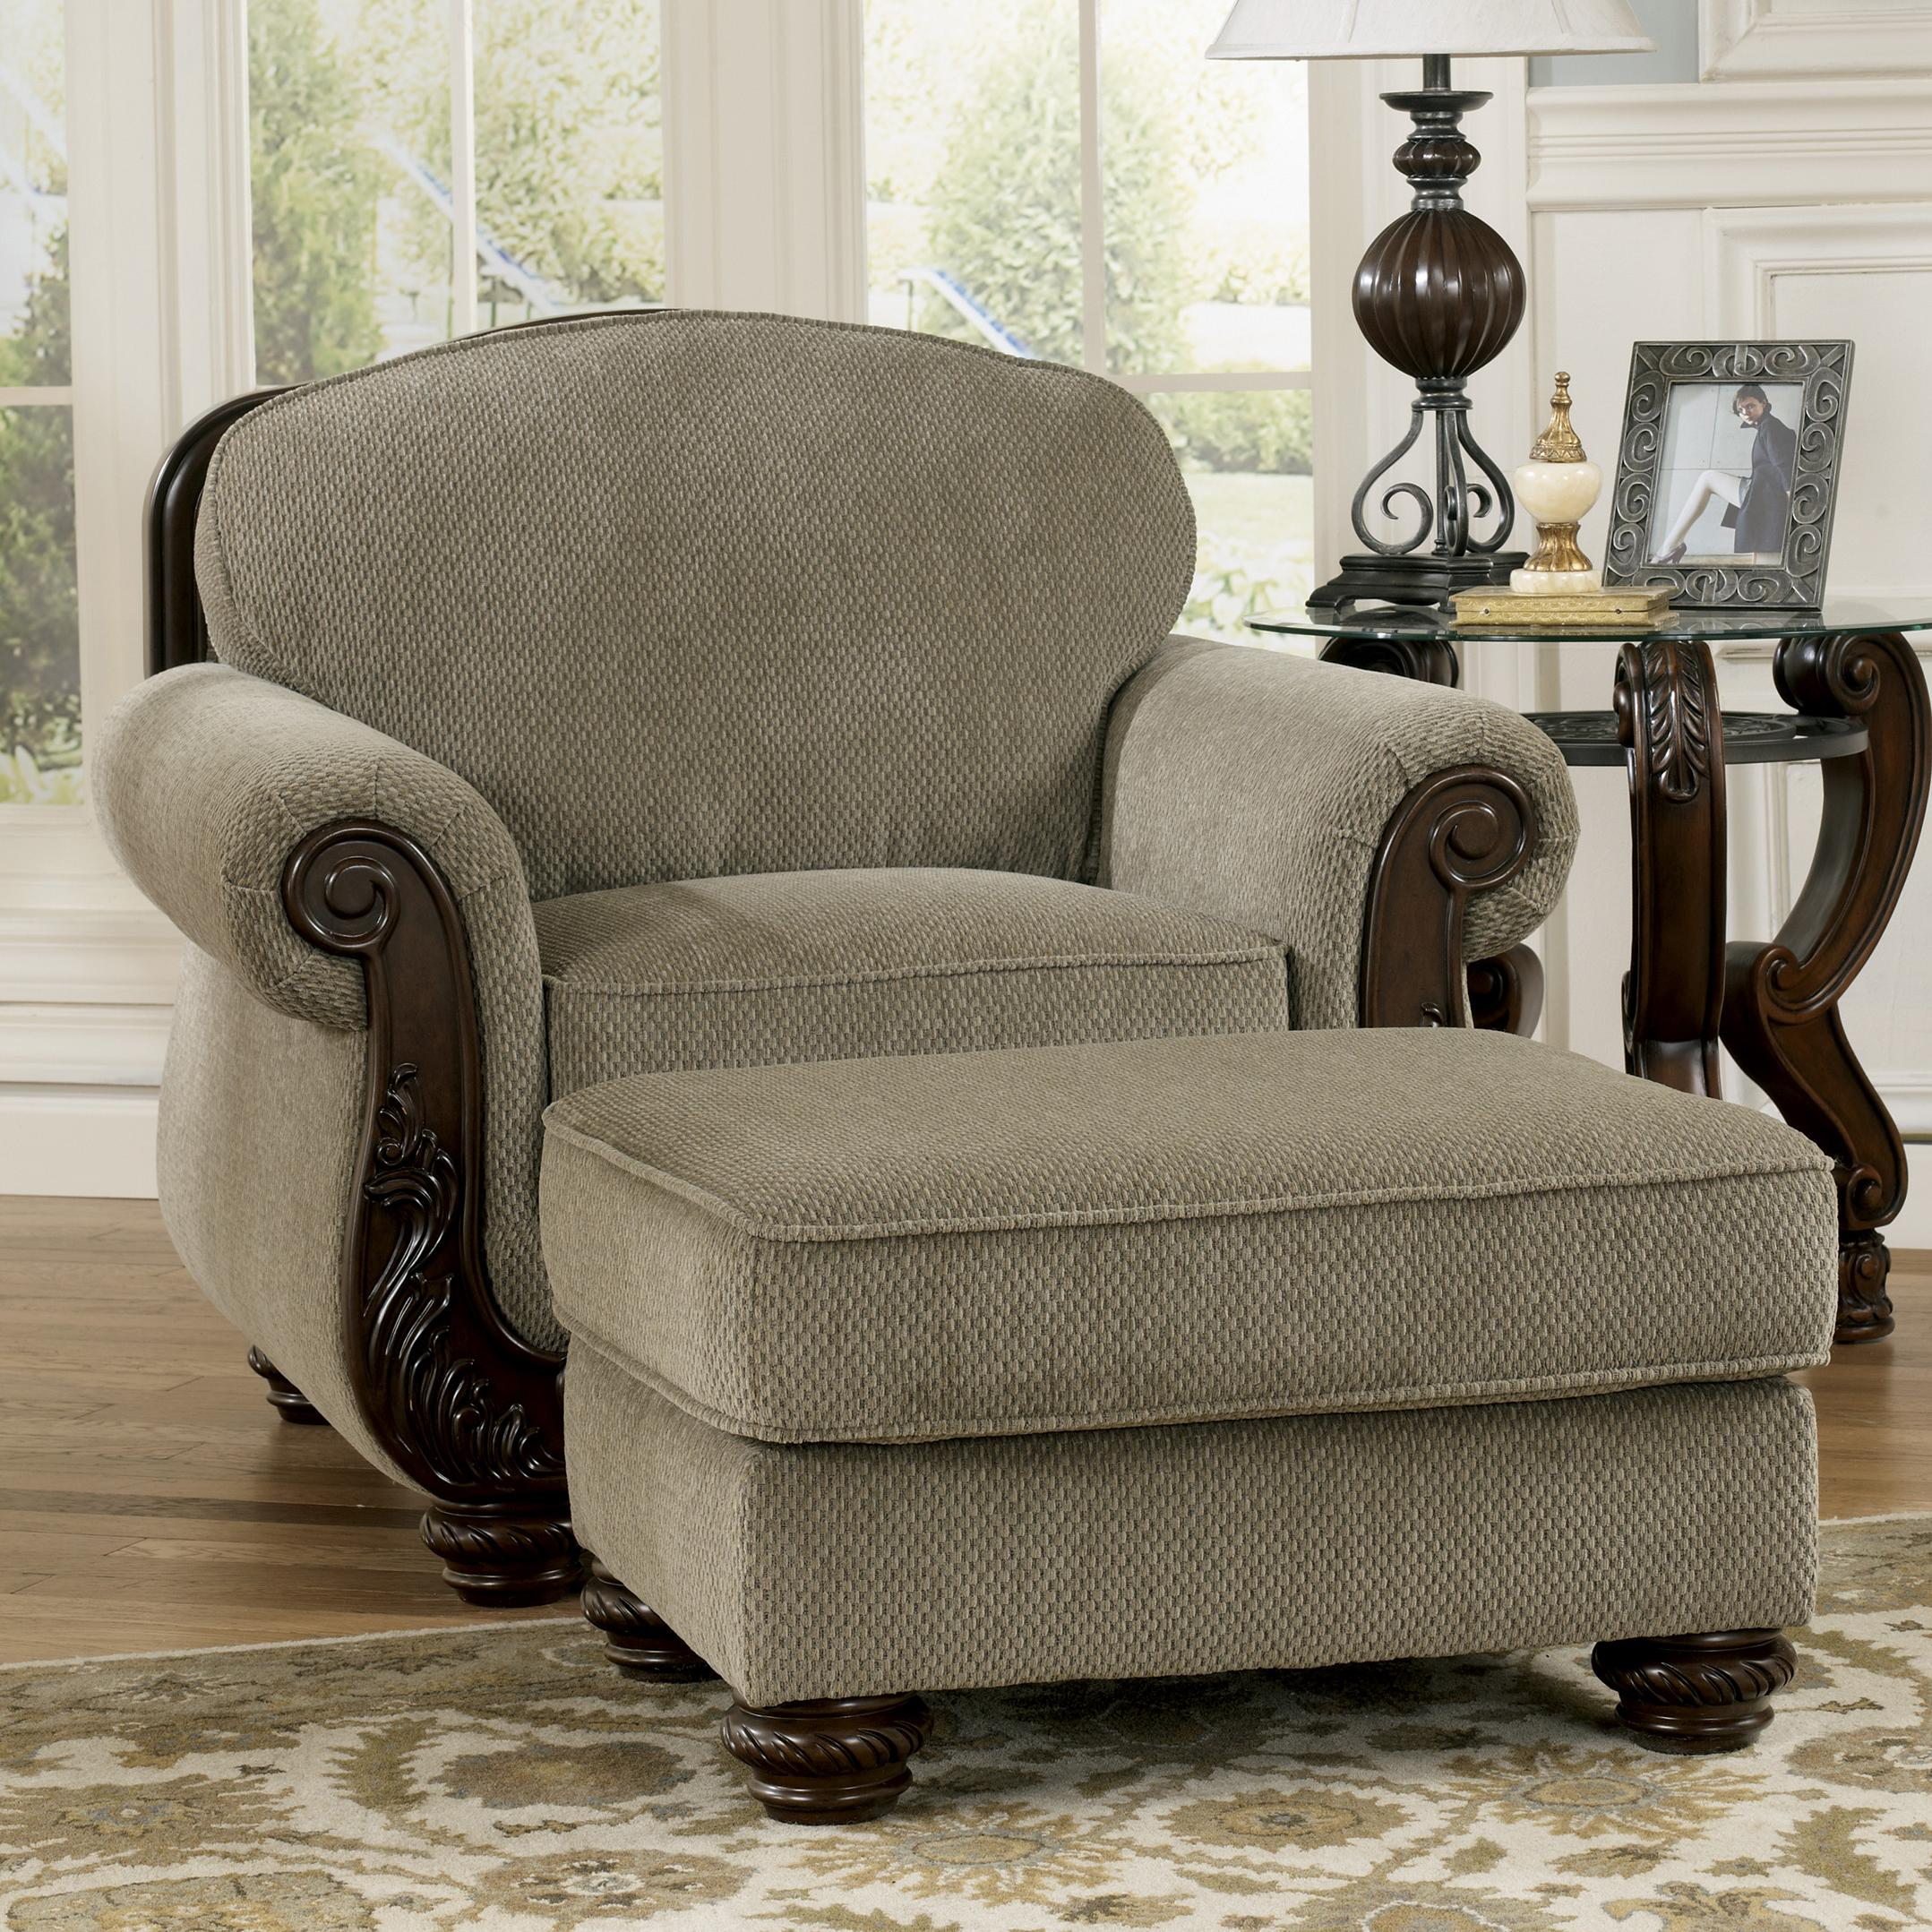 Signature Design by Ashley Martinsburg - Meadow Chair & Ottoman - Item Number: 5730020+14